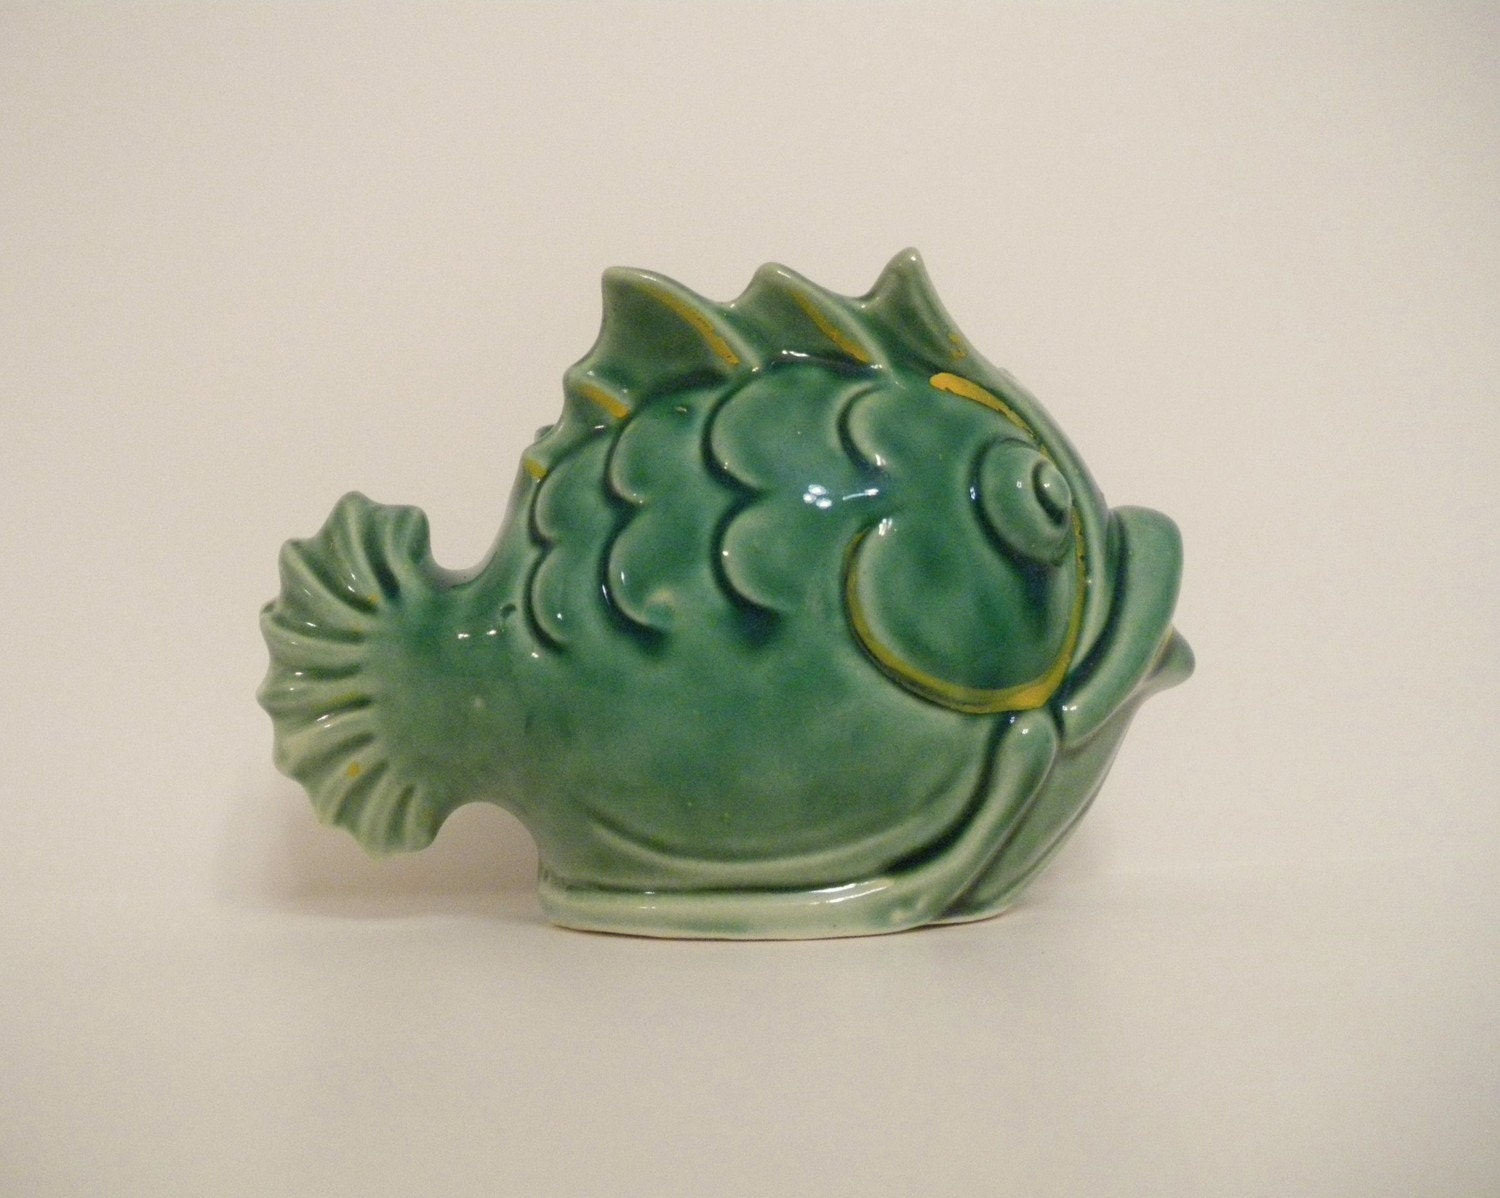 Vi N T A G E Ceramic Fish Wall Pocket Planter Vase Art